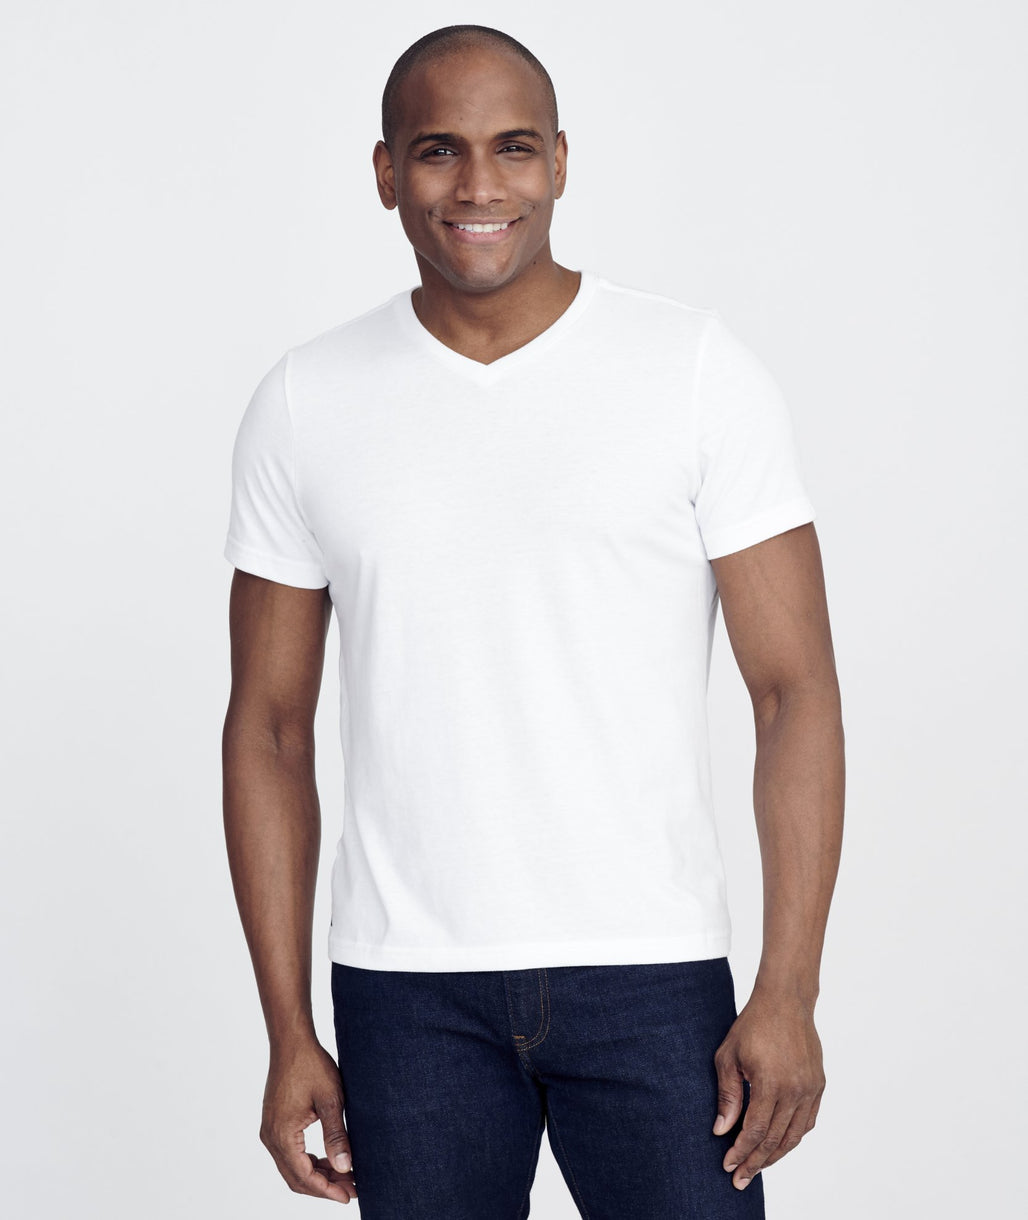 Model wearing a White Ultrasoft V-Neck Tee